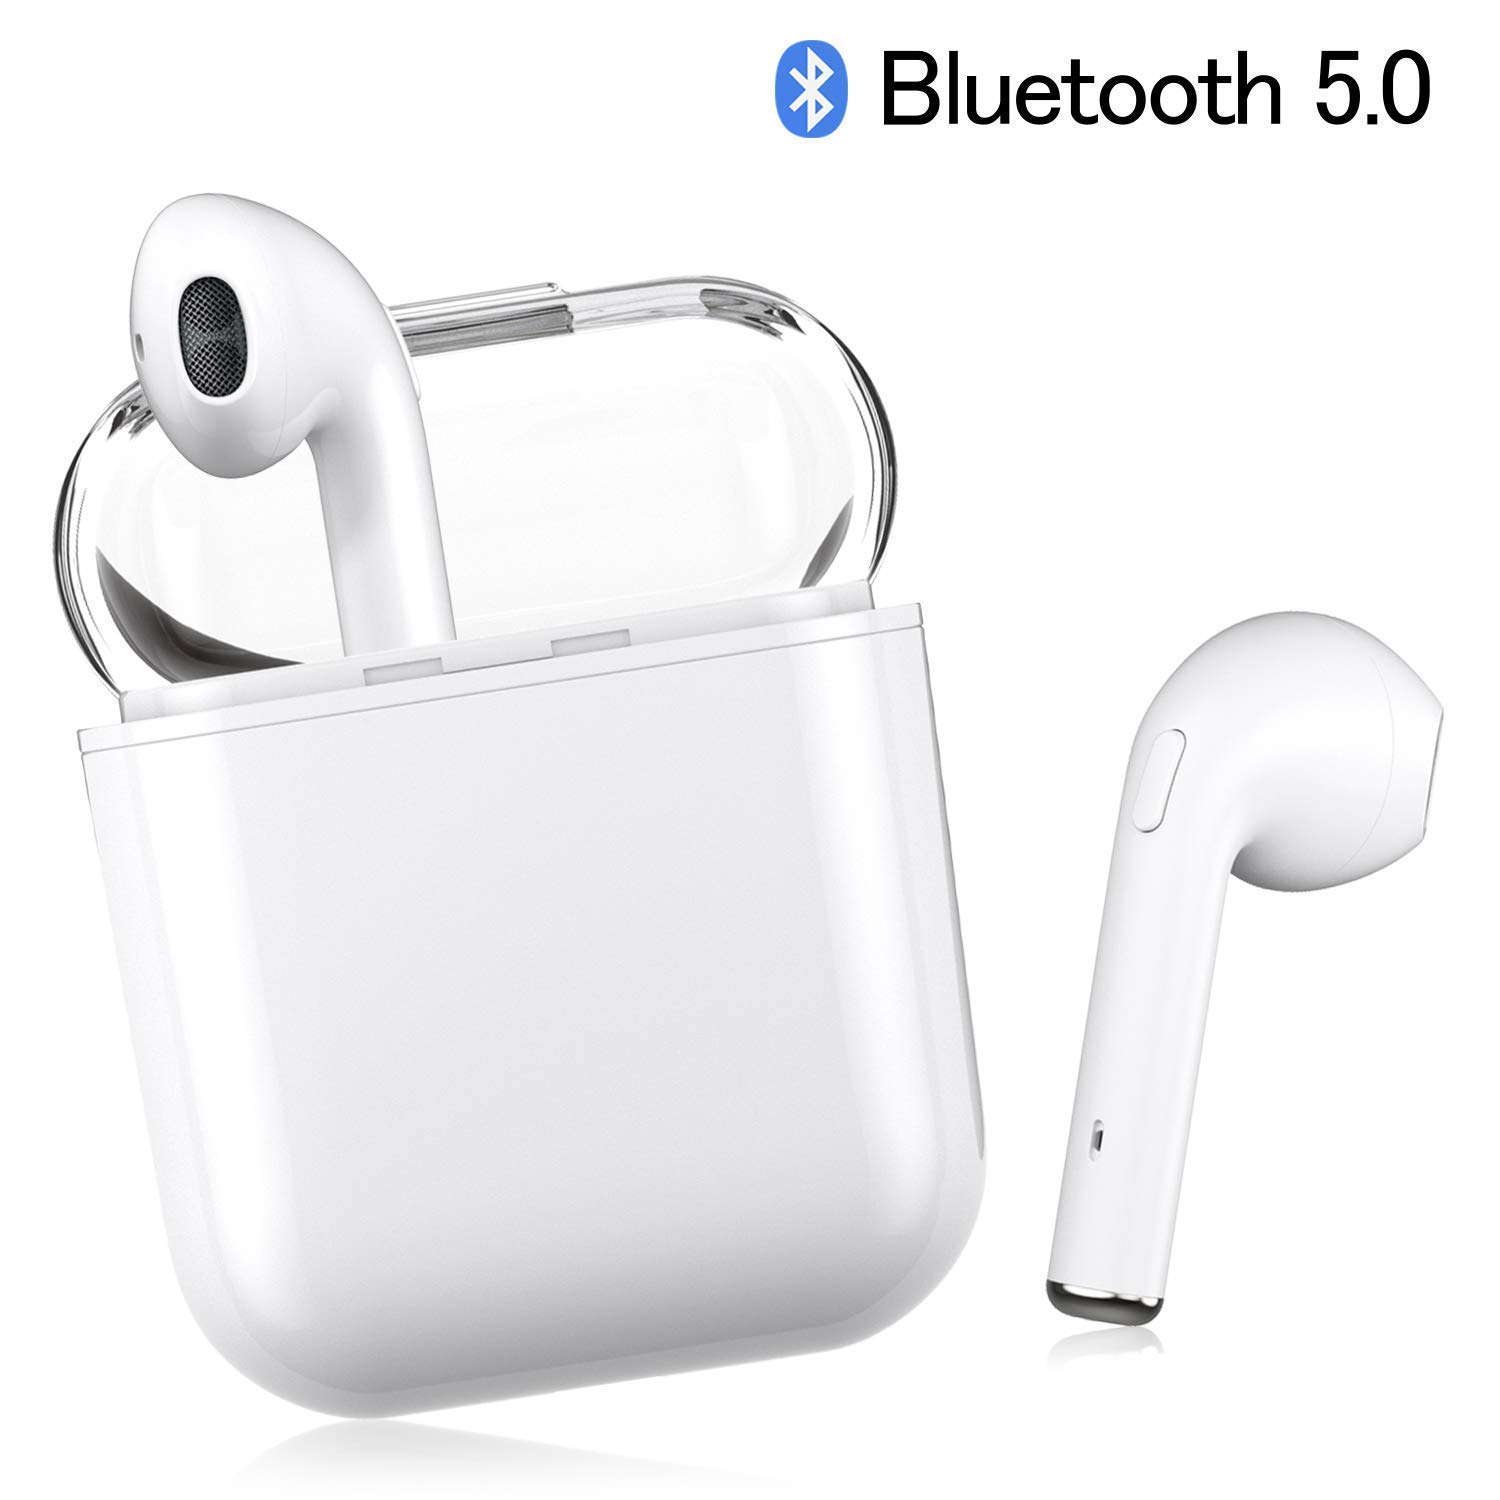 I8X Bluetooth Headset 5.0 Earphones Sports Headphones Noise Reduction Sports Sweat HD Hands-Free Calling Stereo Headphones Microphones and Charging Cases Unisex